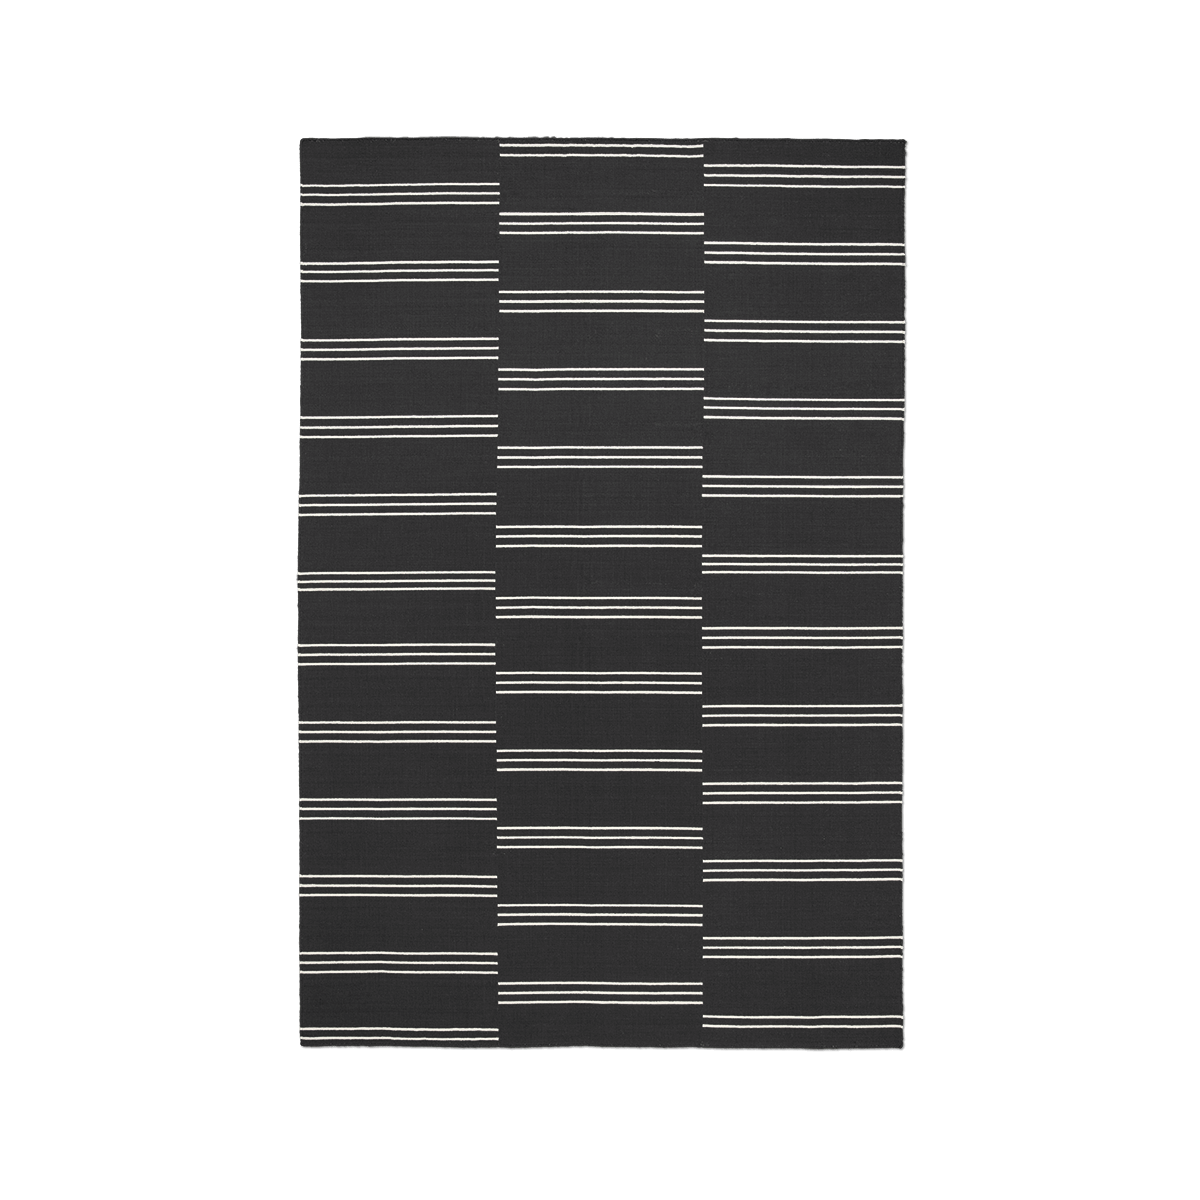 Product image of flatweave rug Stripes in color Anthracite.